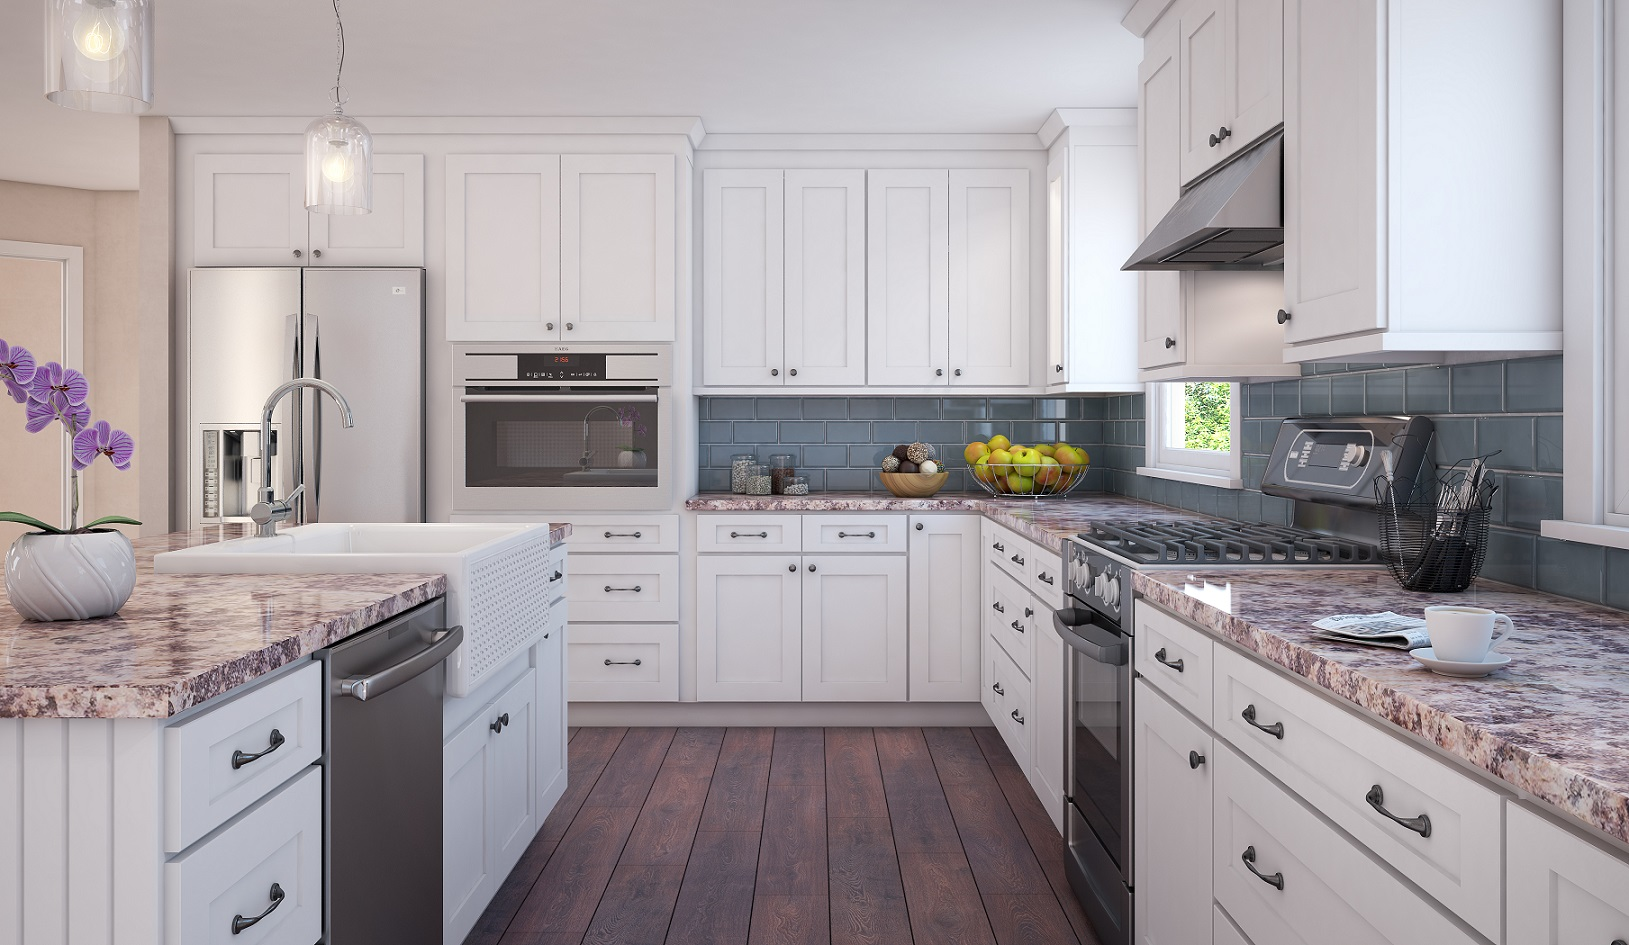 Kitchen Cabinets Tips For Finding And Buying The Right Cabinets For You Alba Kitchen Design: kitchen and bath design center lake hopatcong nj